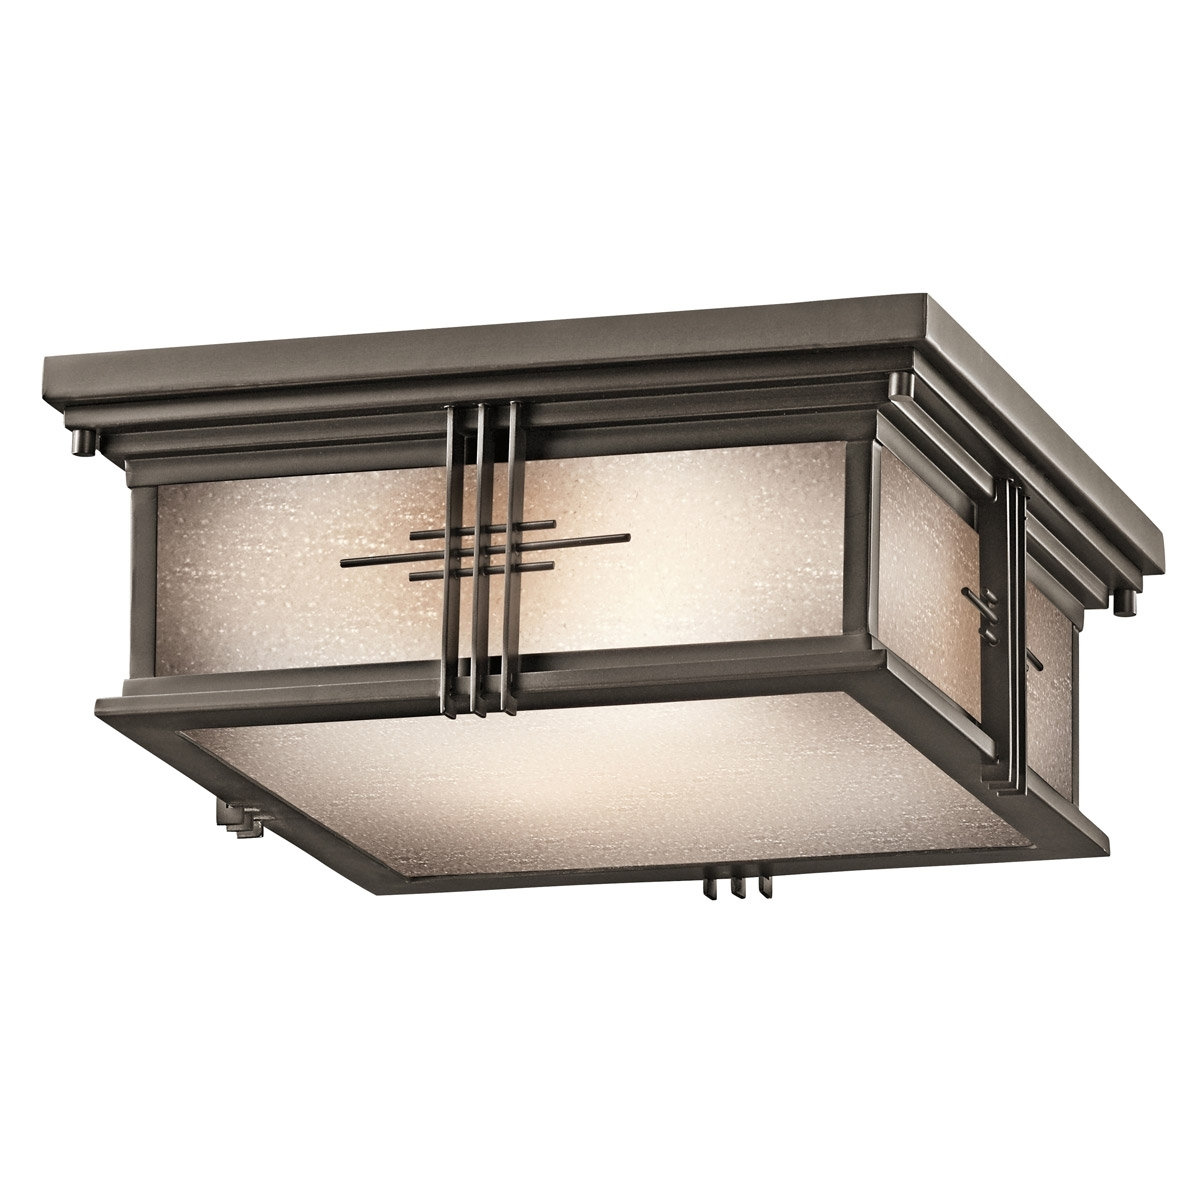 Best And Newest 49164oz Portman Square Outdoor Flush Mount Ceiling Fixture Intended For Outdoor Ceiling Flush Lights (View 14 of 20)